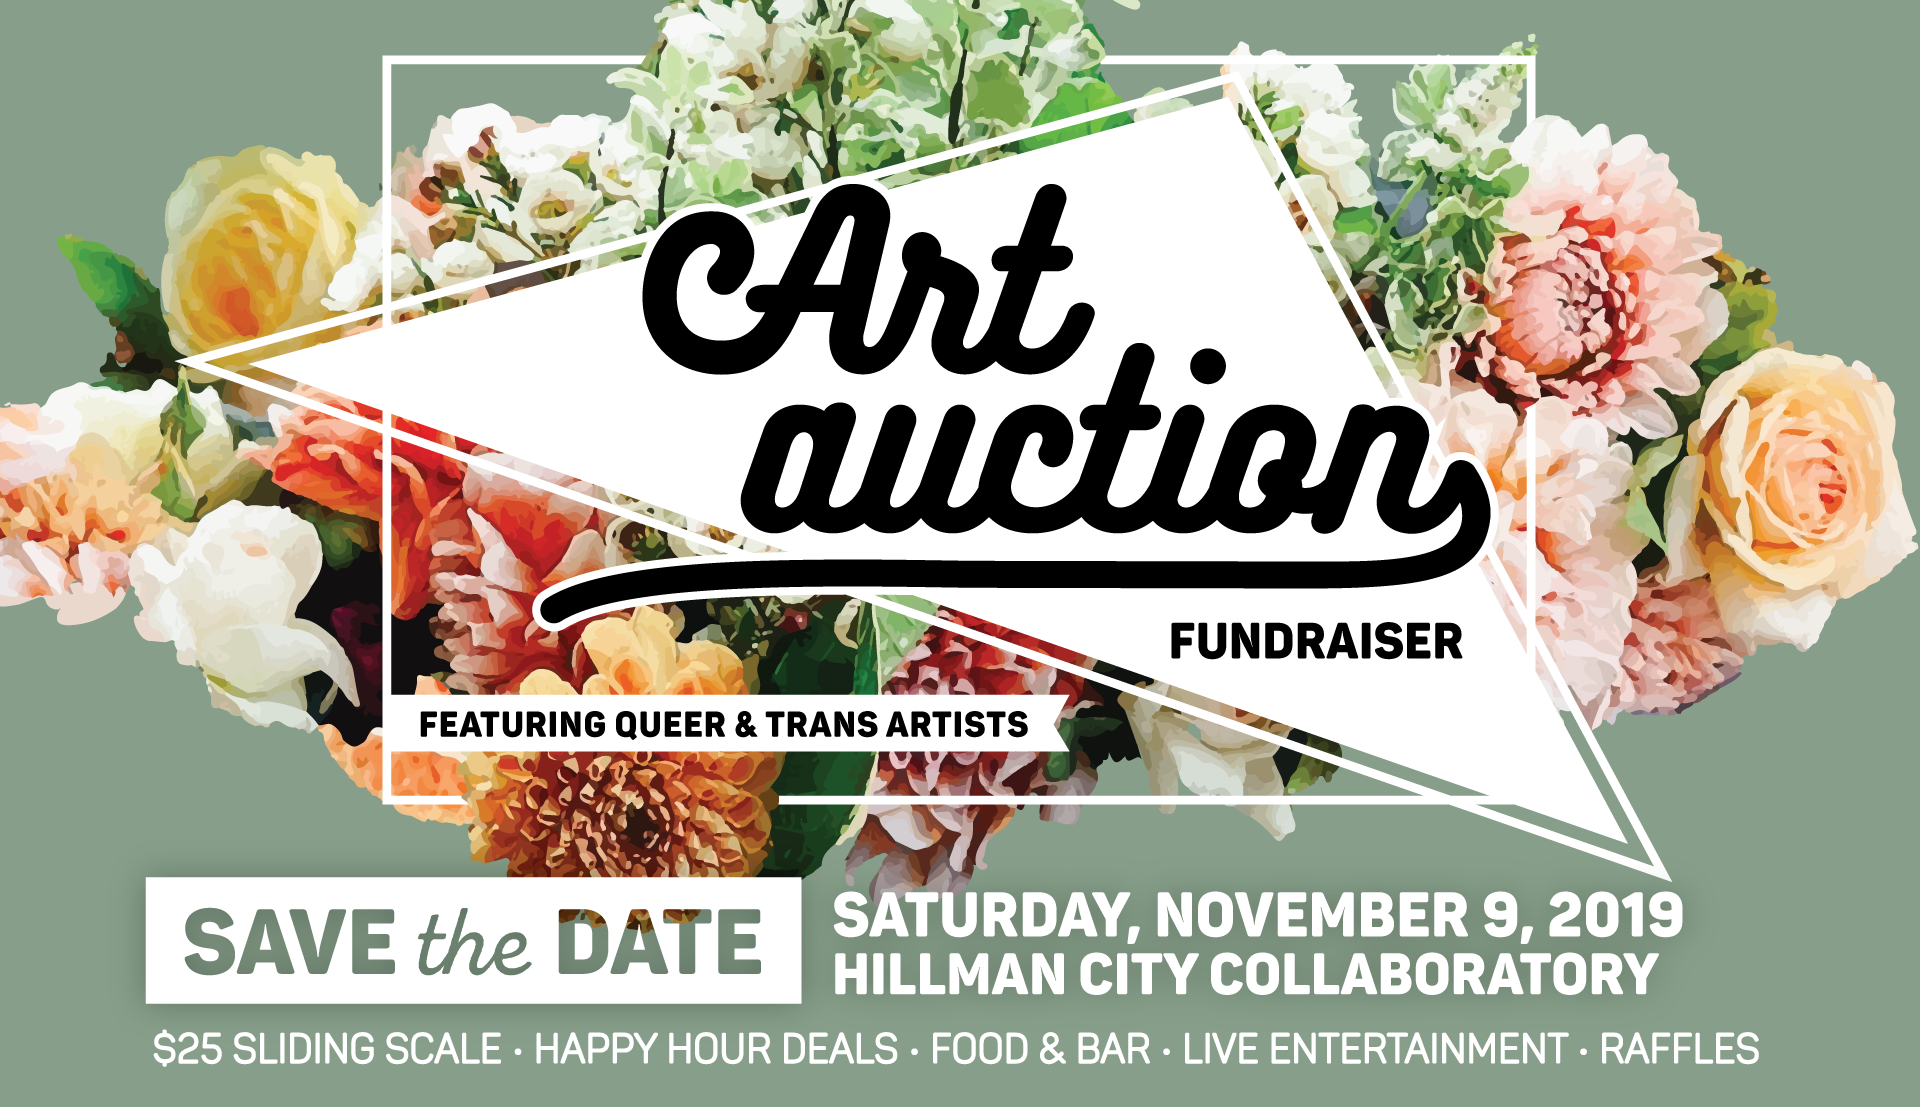 Image description: Art Auction Fundraiser featuring queer & trans artists - Save the Date: Saturday, November 9, 2019 @ Hillman City Collaboratory - $25 sliding scale, Happy hour deals, Food & bar, Live entertainment, Raffles   Green background with pastel bouquet of flowers as background; white outline of a box intertwining with floral design, white triangle as main focal point behind title